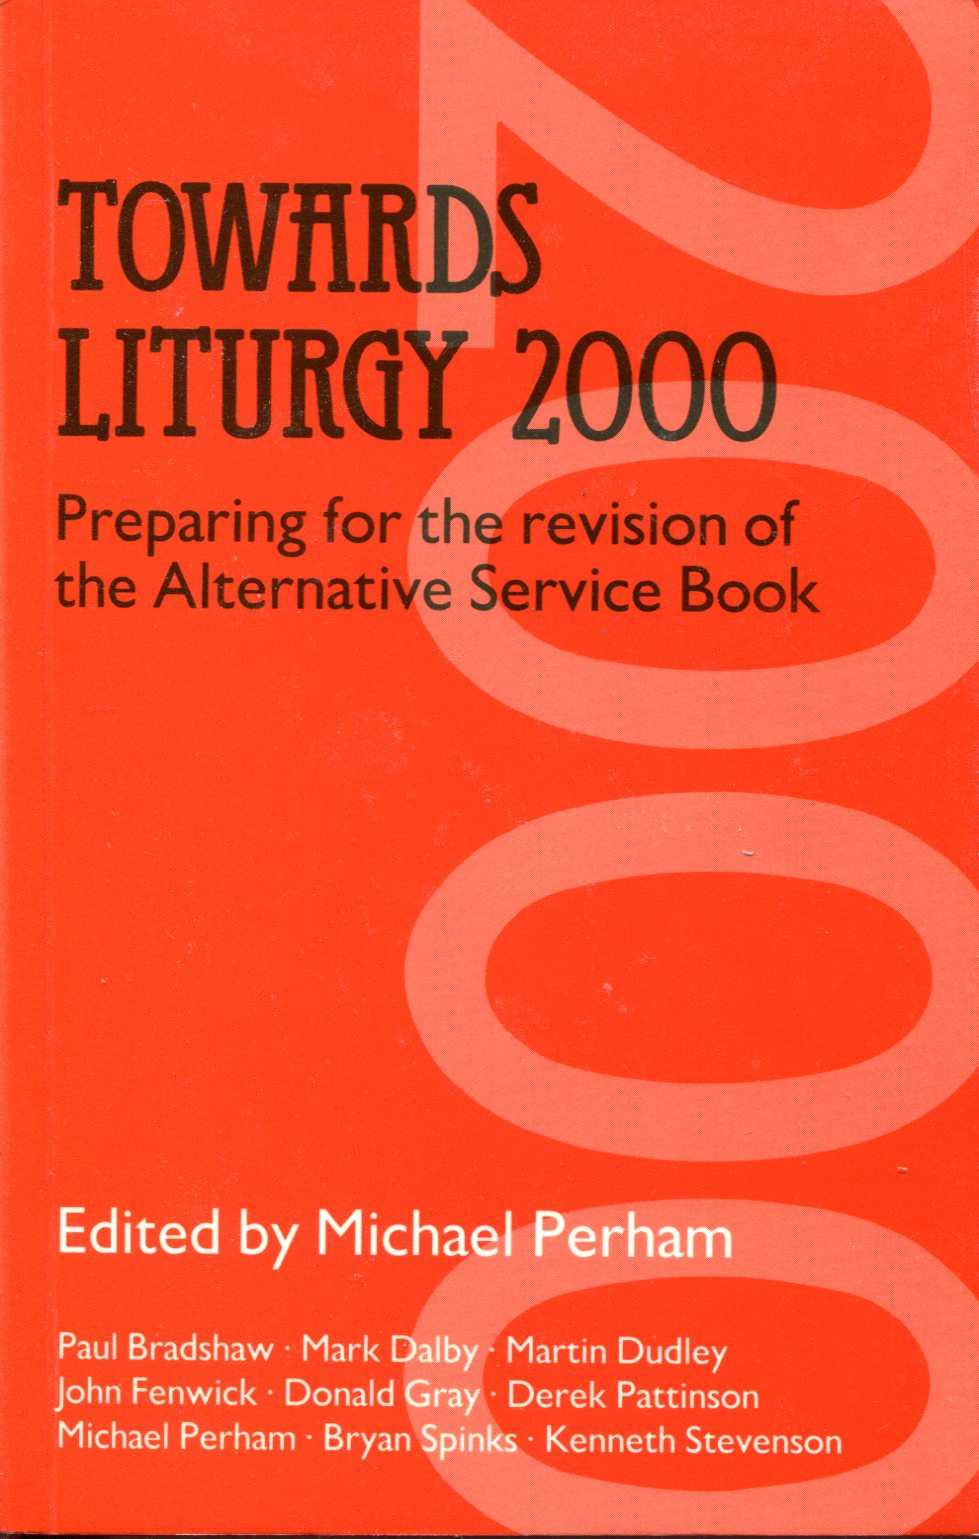 Image for Towards liturgy 2000: Preparing for the revision of the Alternative service book (Alcuin Club collections No. 69)